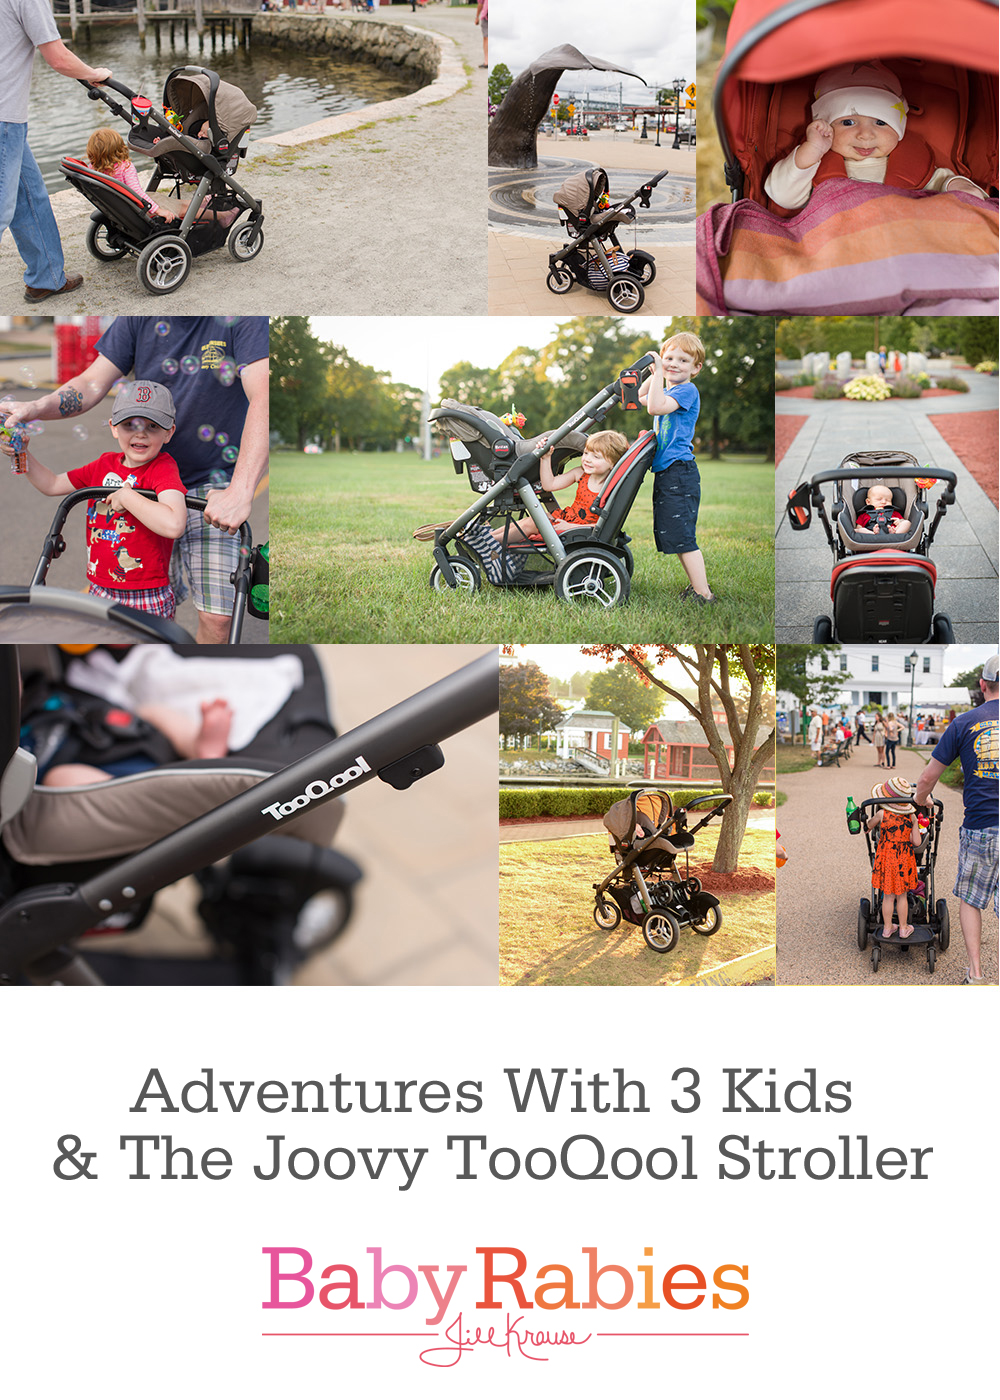 Adventures With 3 Kids & The Joovy TooQool Stroller {Contributor}